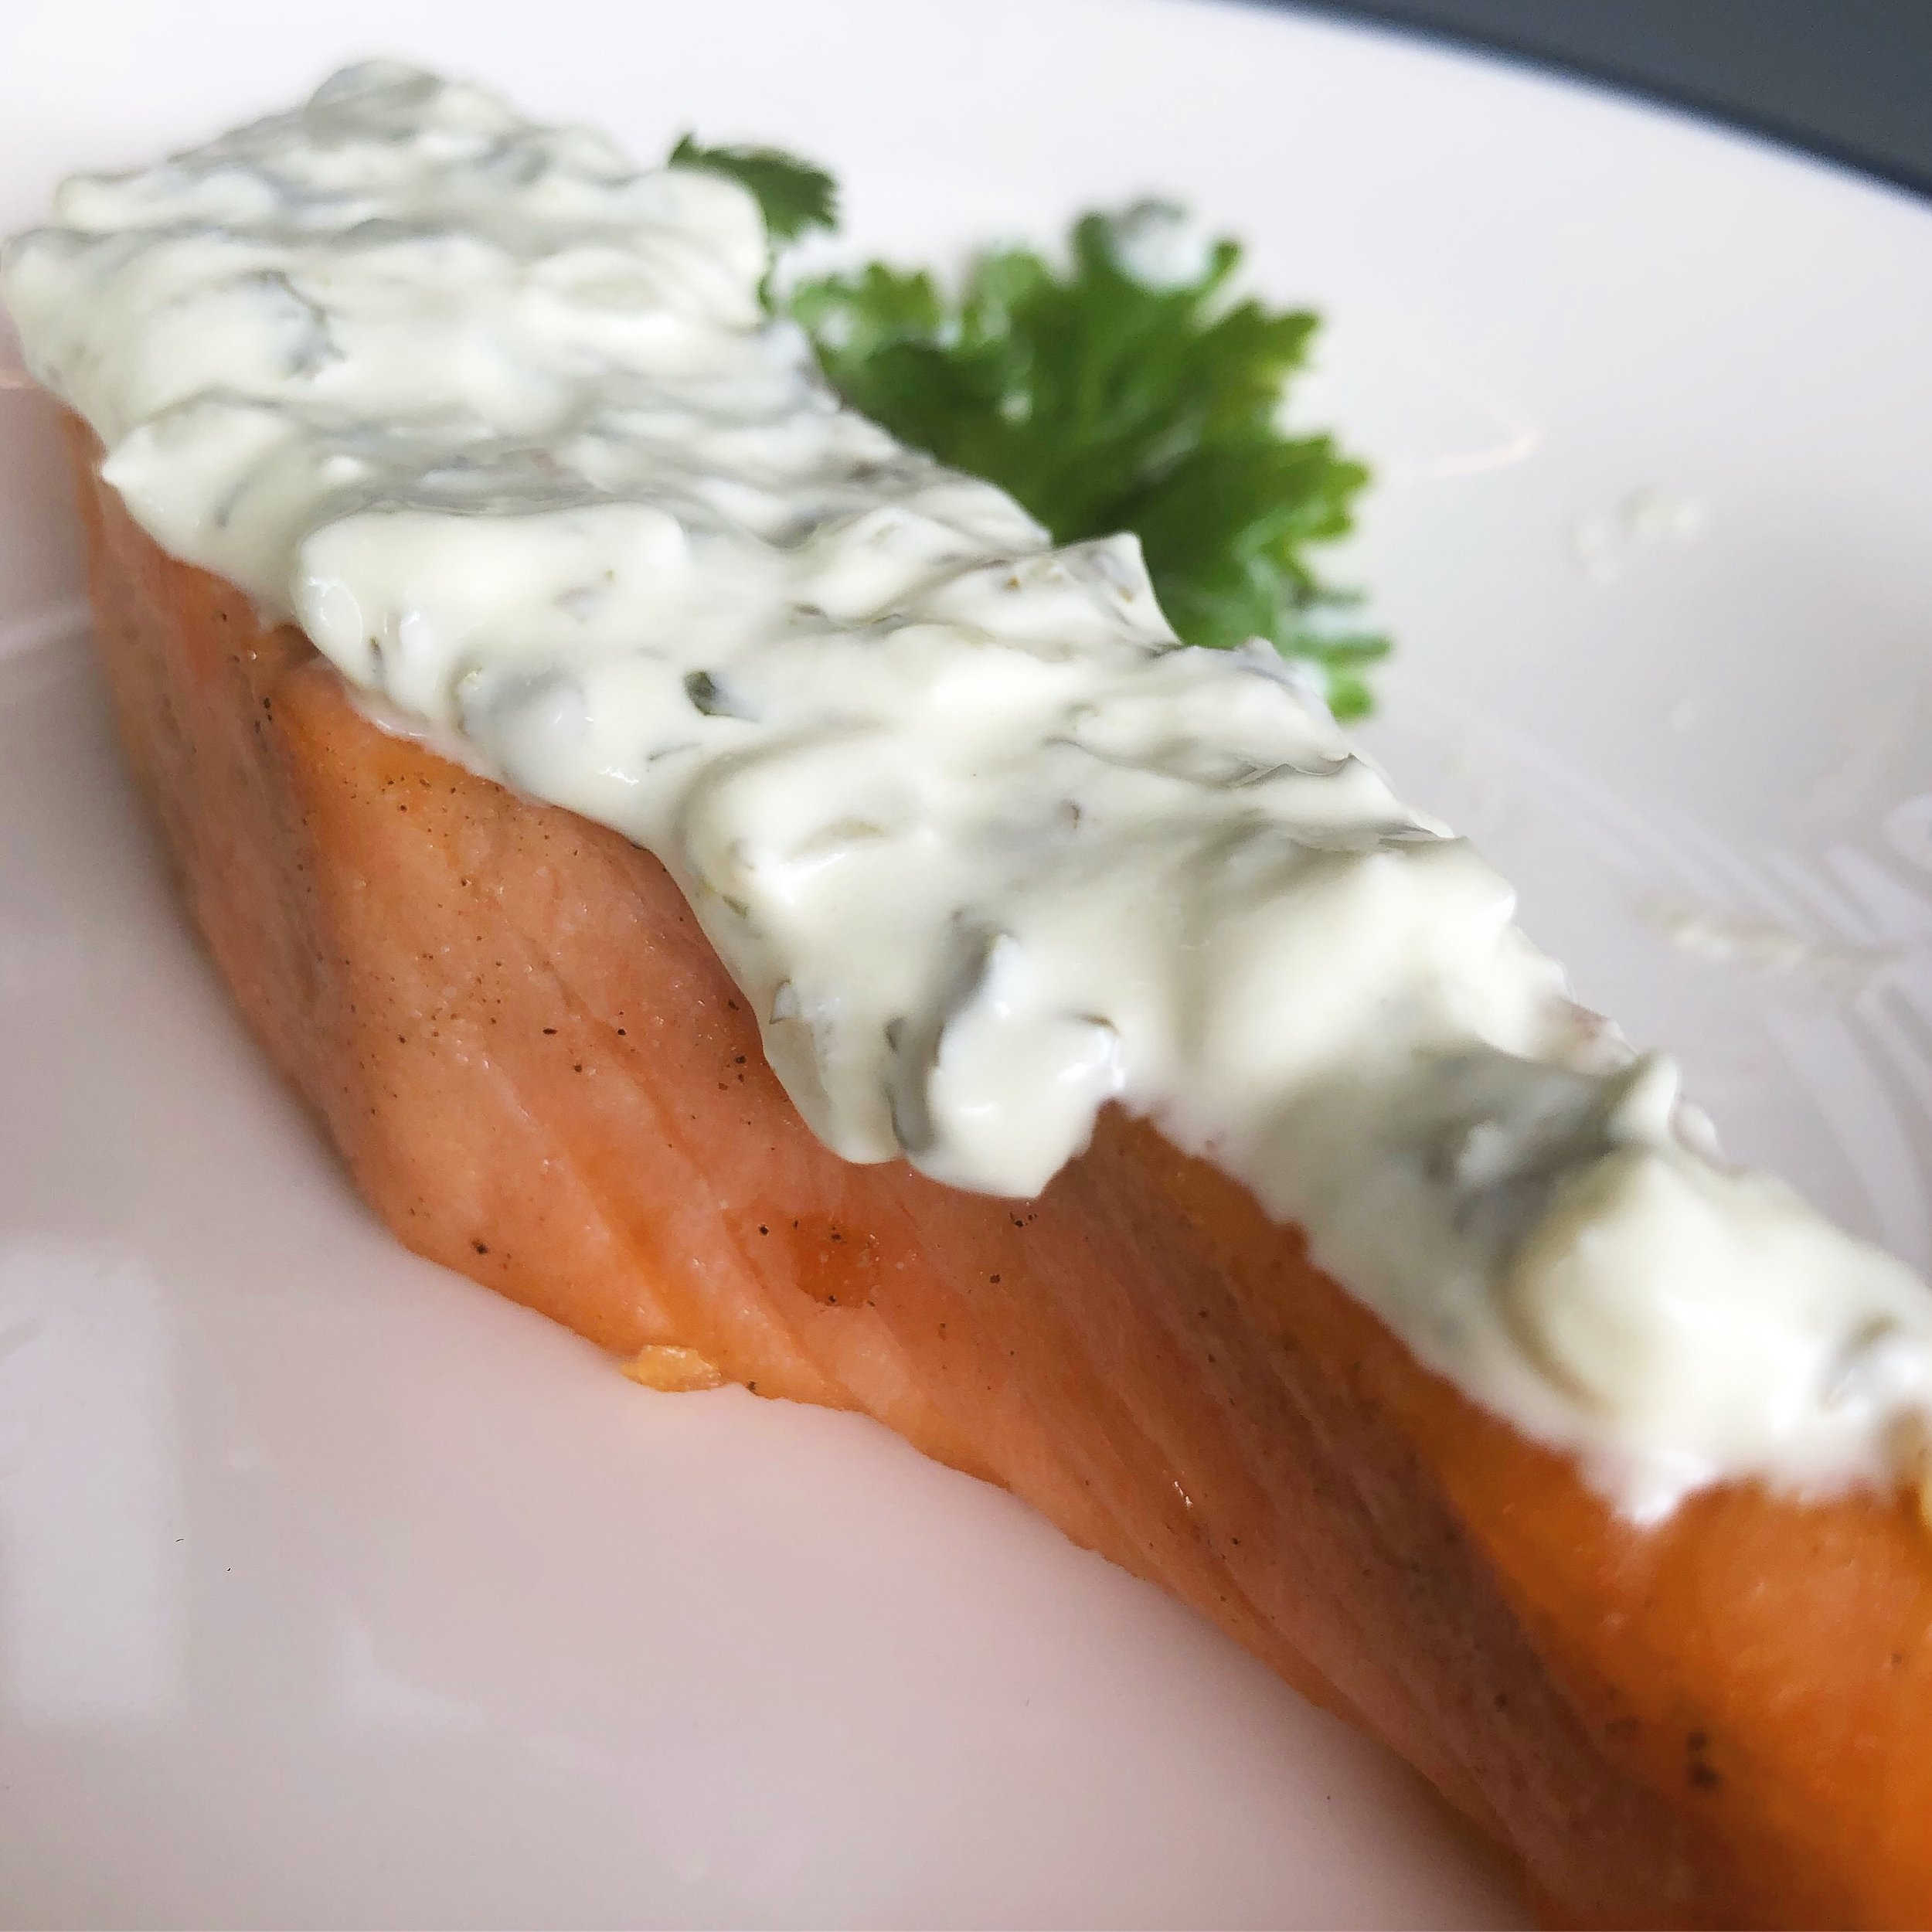 Salmon w/ Sour cream - Norwegian Salmon pan fried in olive oil and served with a sour cream sauceExtra 50 baht per piece